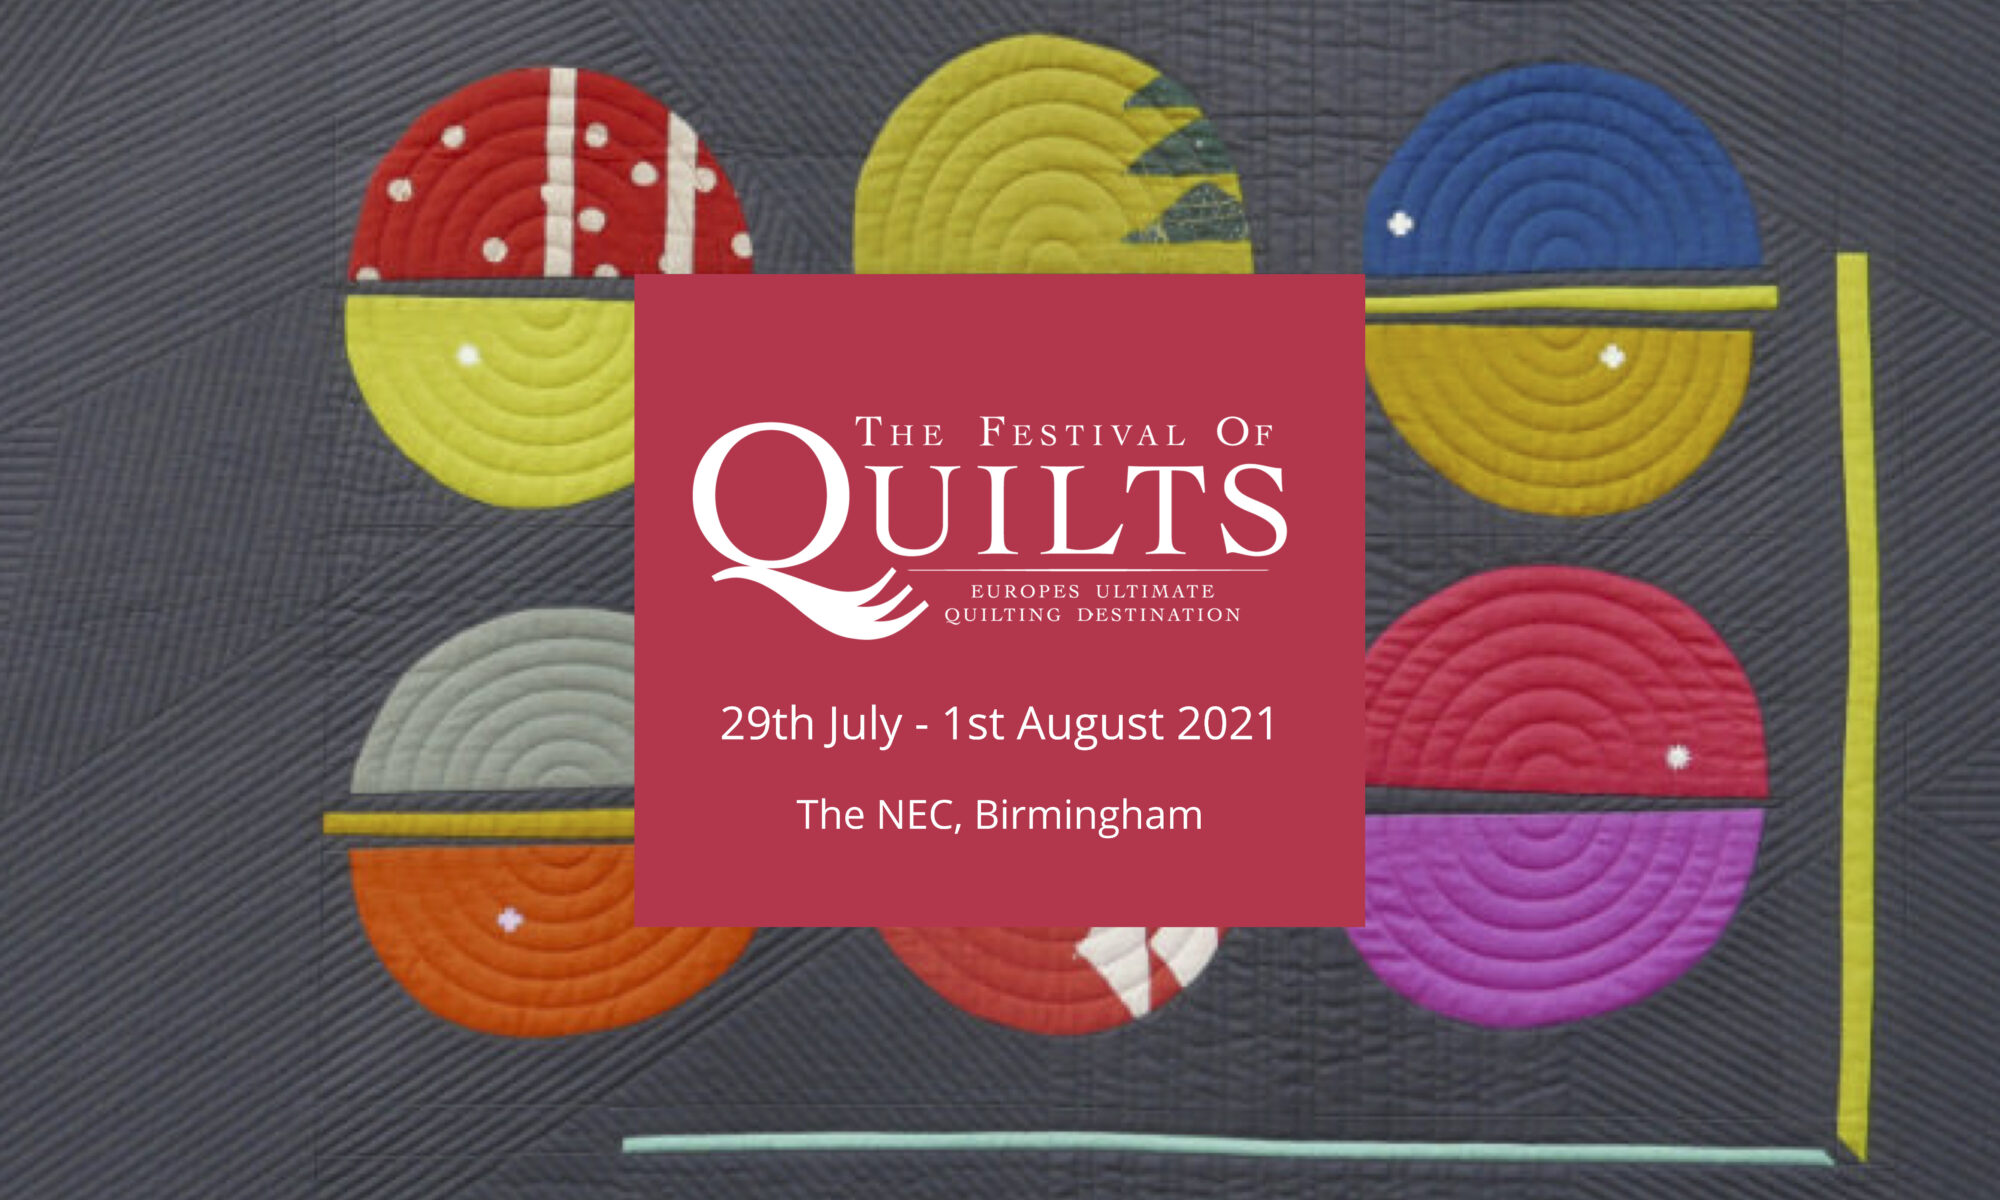 Festival of quilts logo